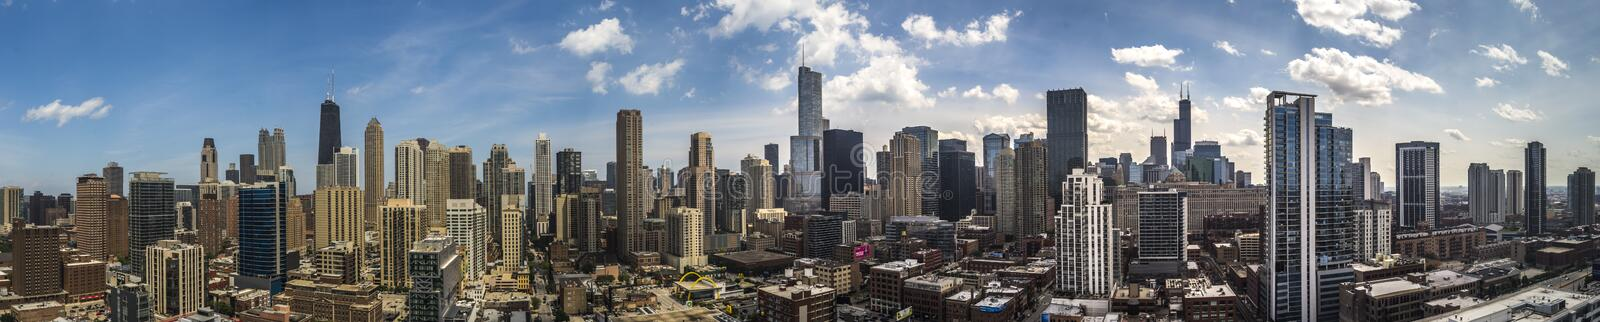 Panorama dell'orizzonte di Chicago fotografia stock